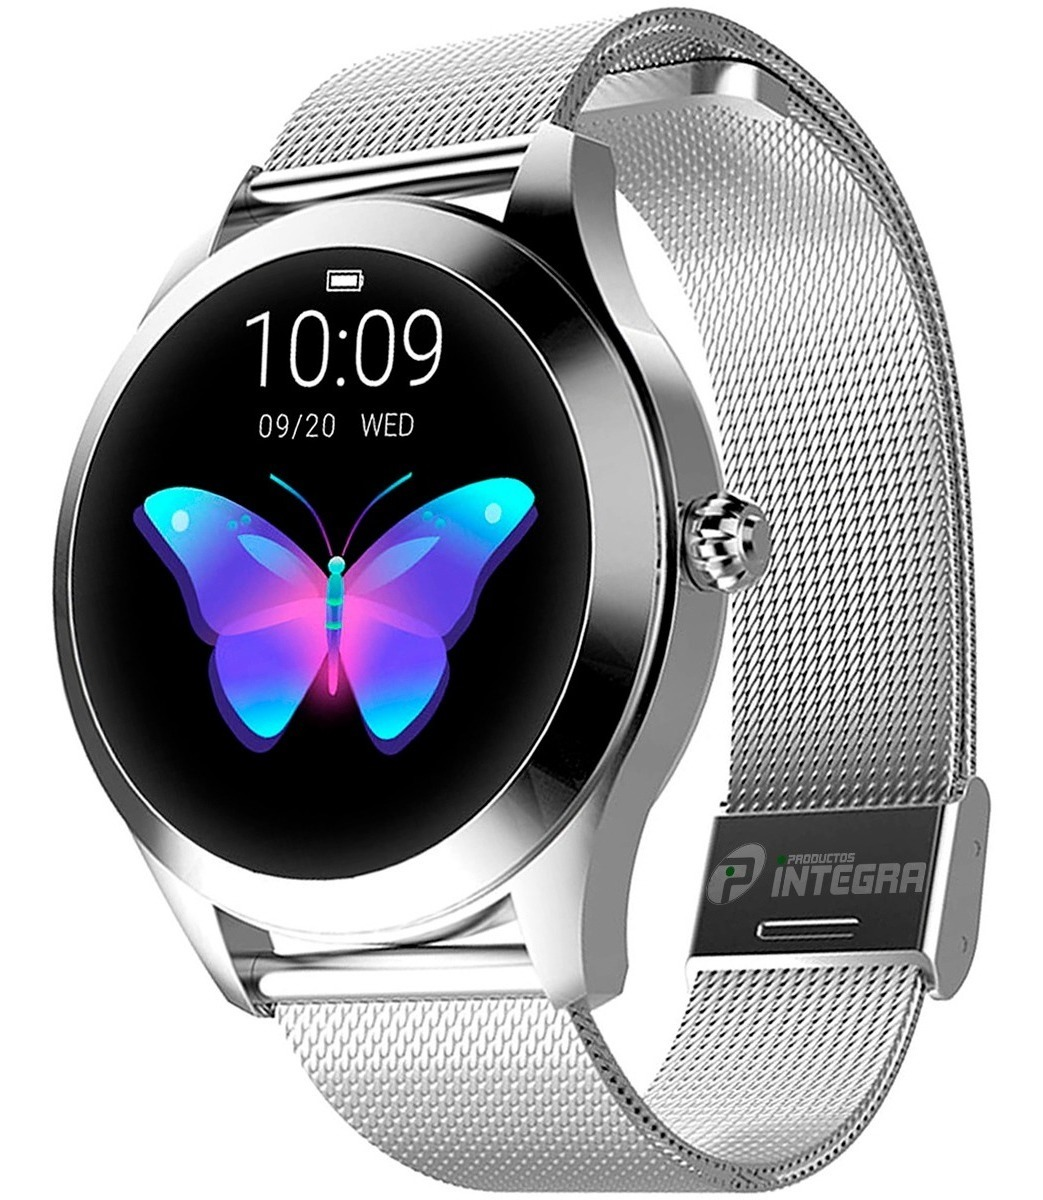 nuevo producto de1aa 0a5f6 Smartwatch Metal Reloj Mujer Tactil iPhone Android Kw10 Ip68